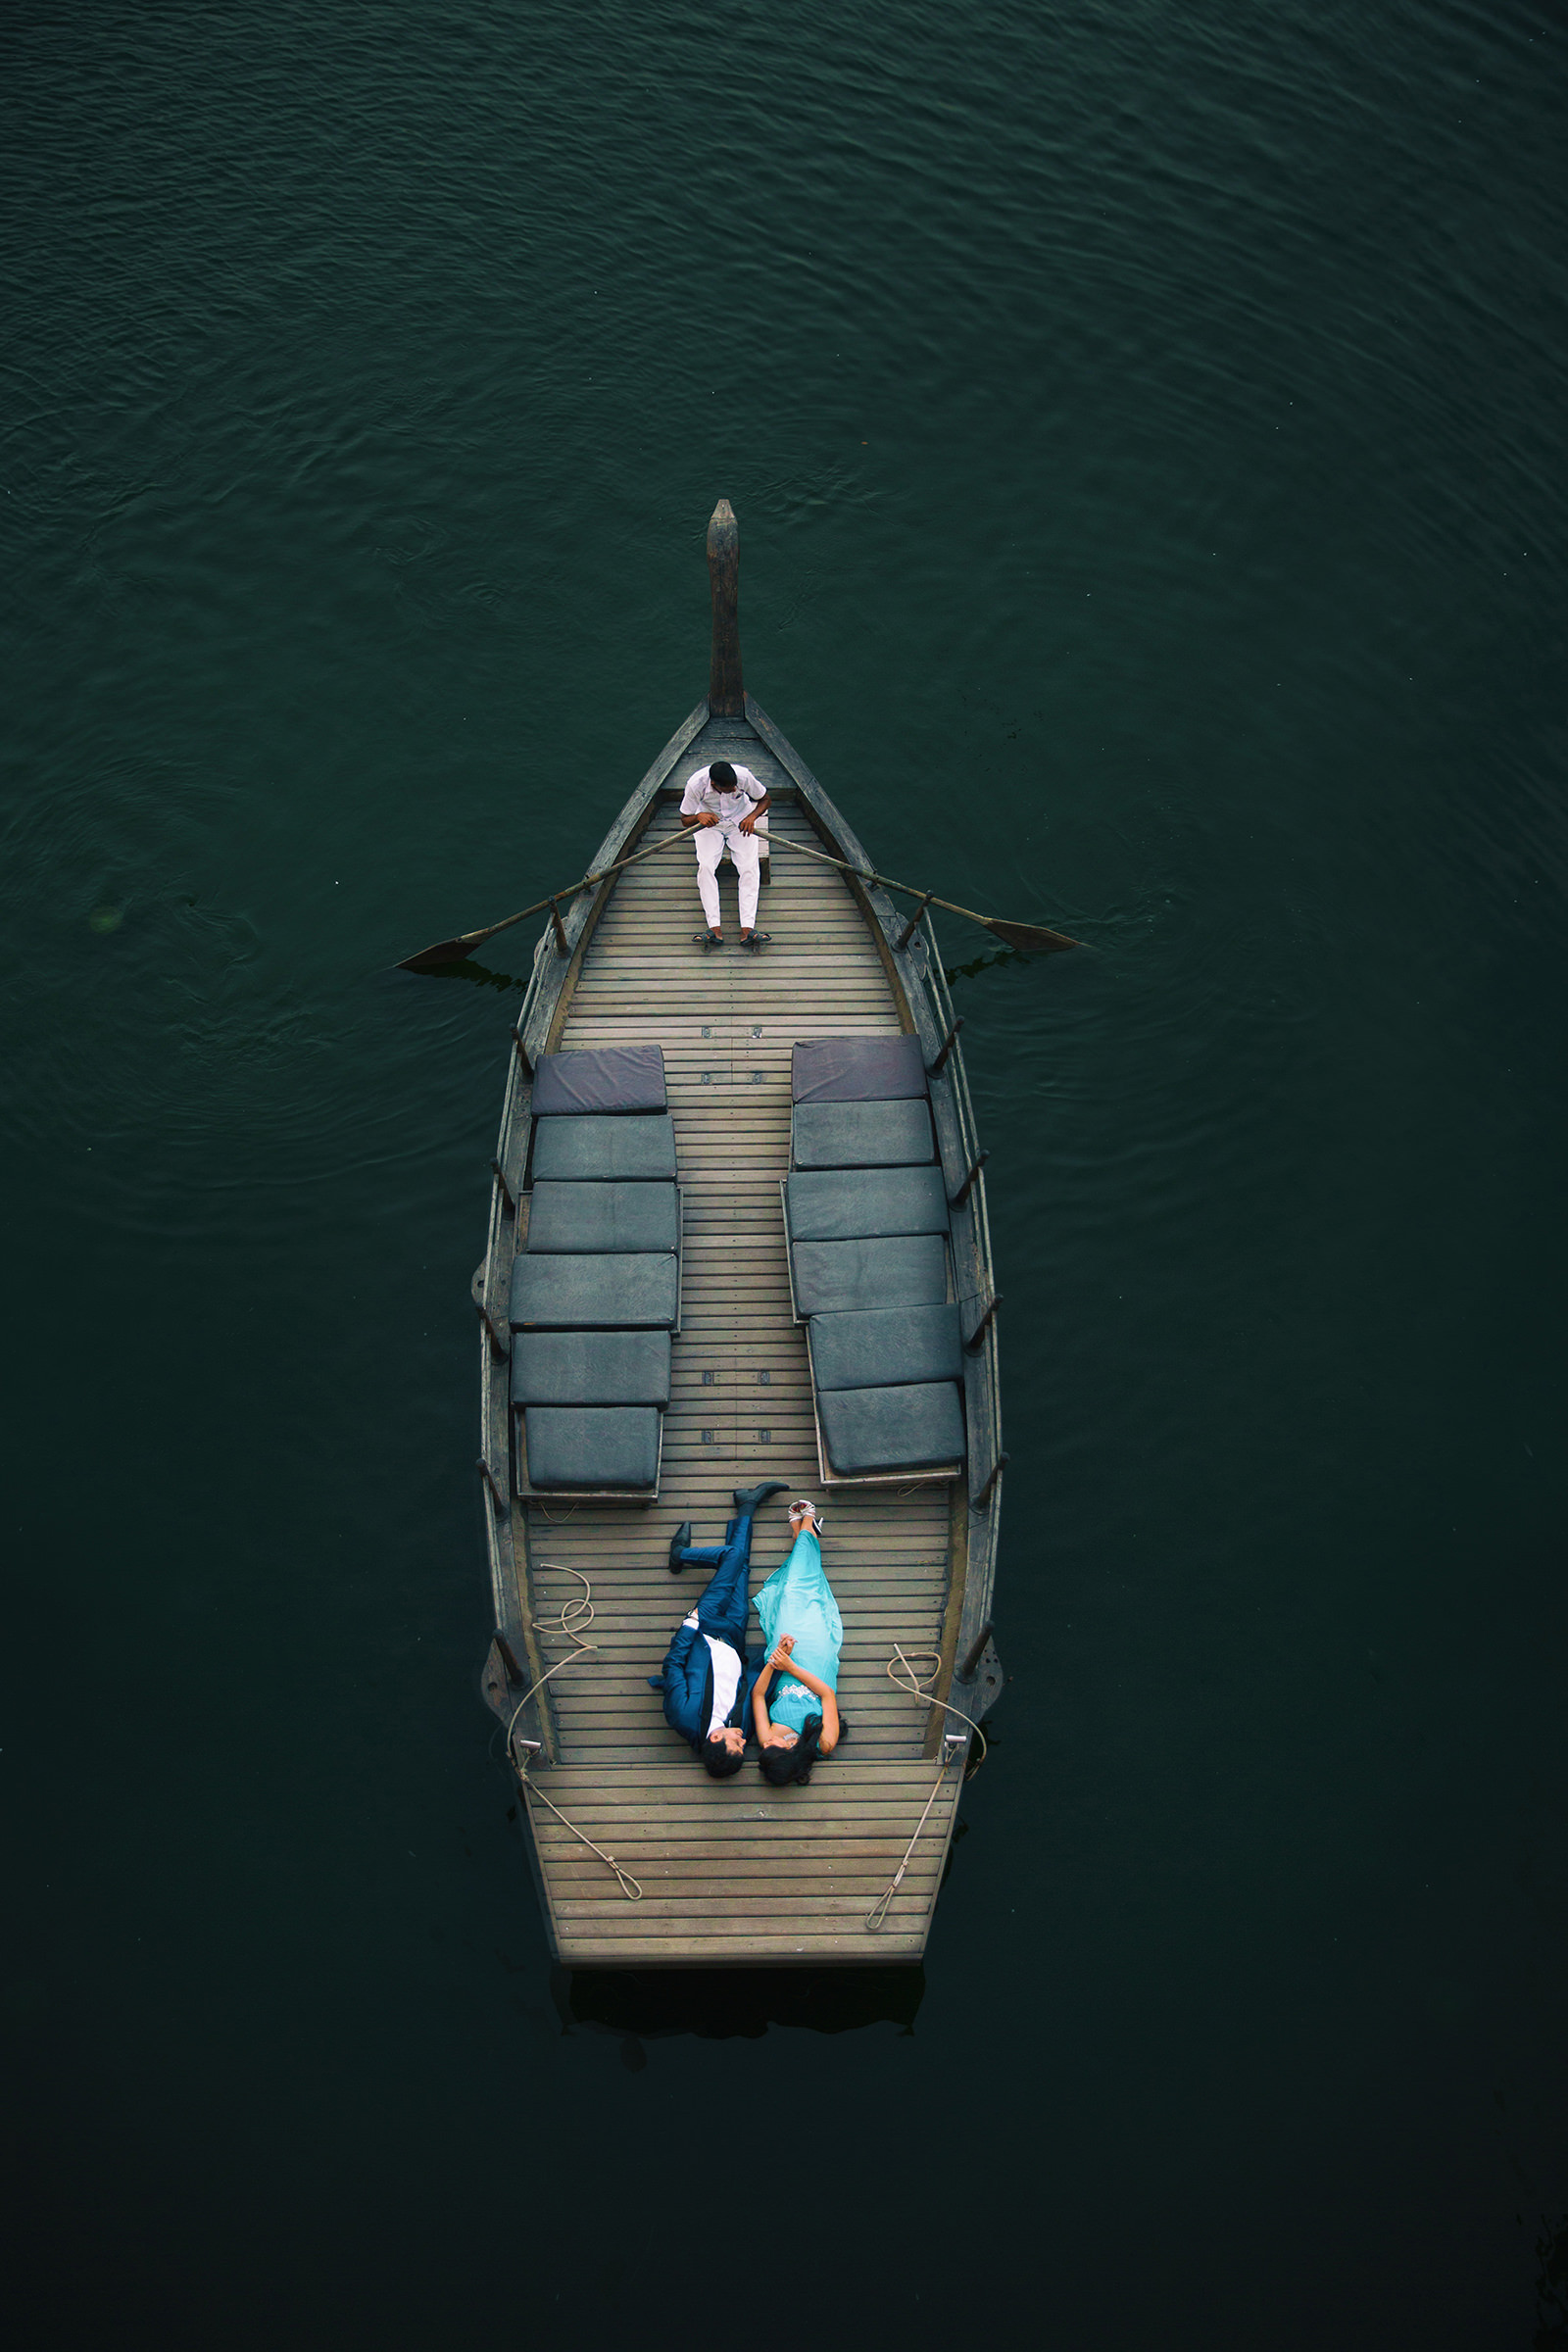 Drone photo of couple being rowed in wooden boat - photo by Shutterink Photography